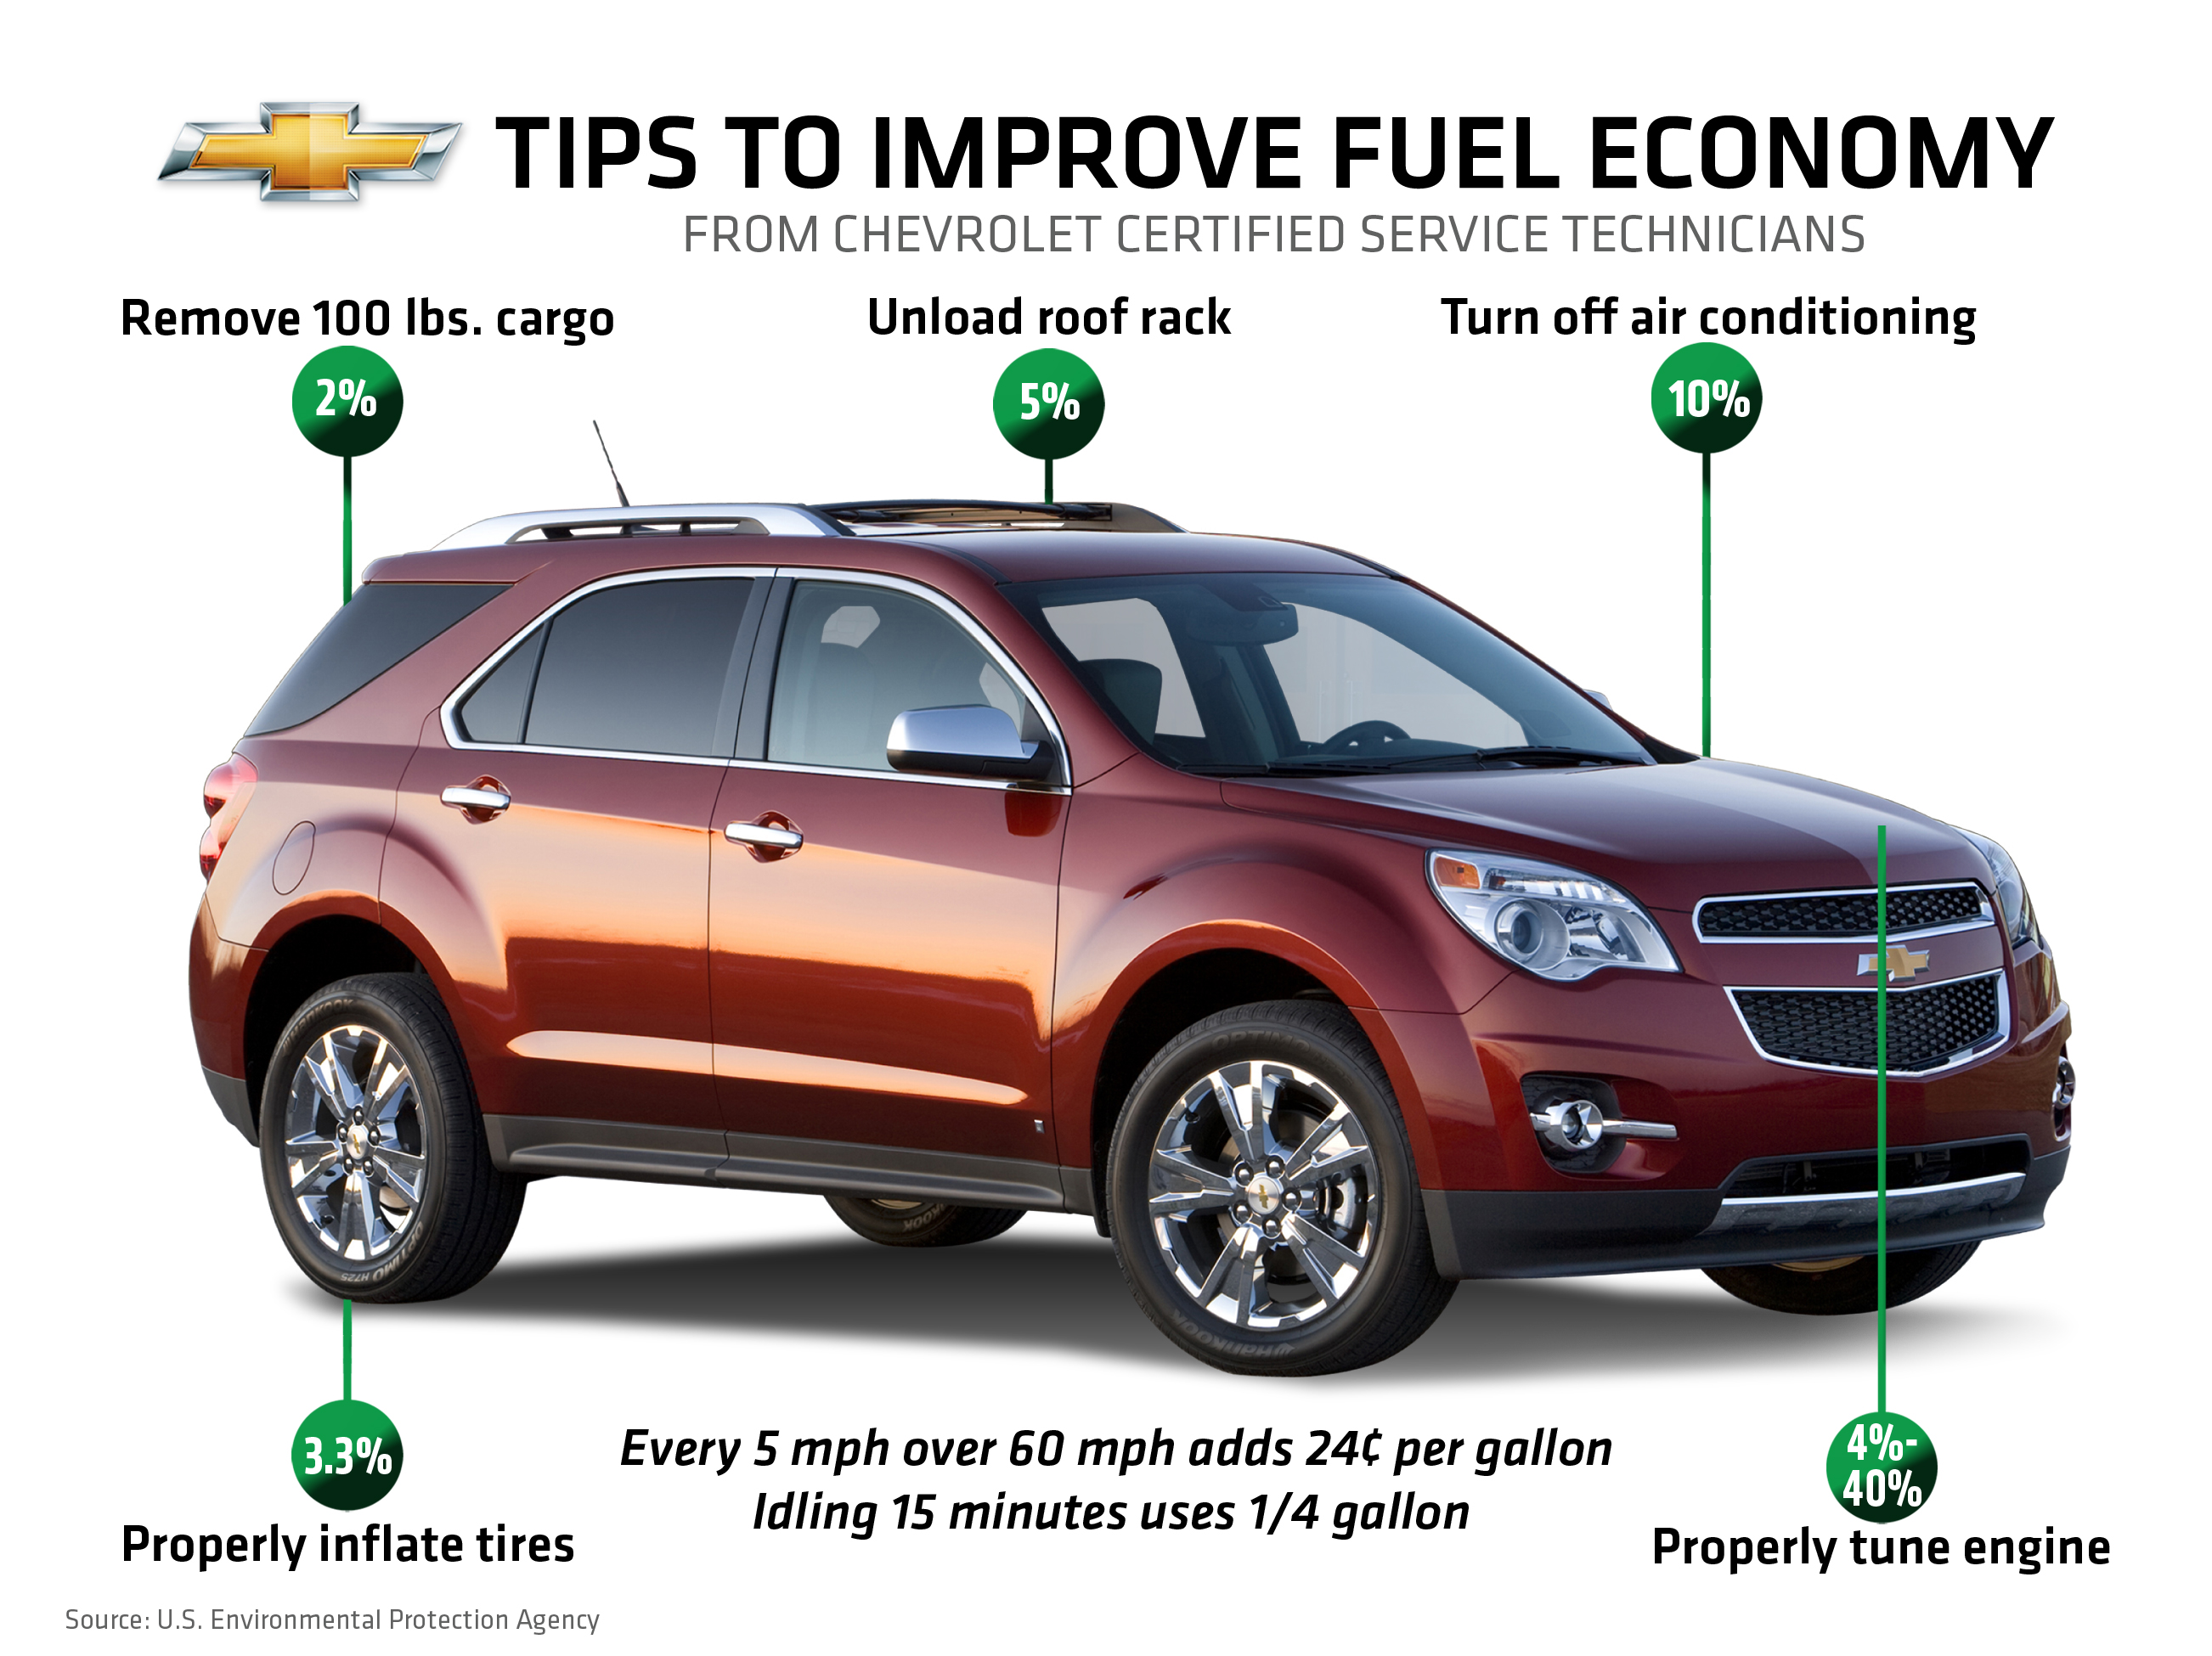 kids remote cars with 13 Better Fuel Economy Tips From Bob Maguire Chevrolet on 5948202 additionally Best Tech Gifts For Kids 2017 3629090 besides Voiture Pour Bebe also Crescent 148 Piece Professional Tool Set as well 000711597 default pd.